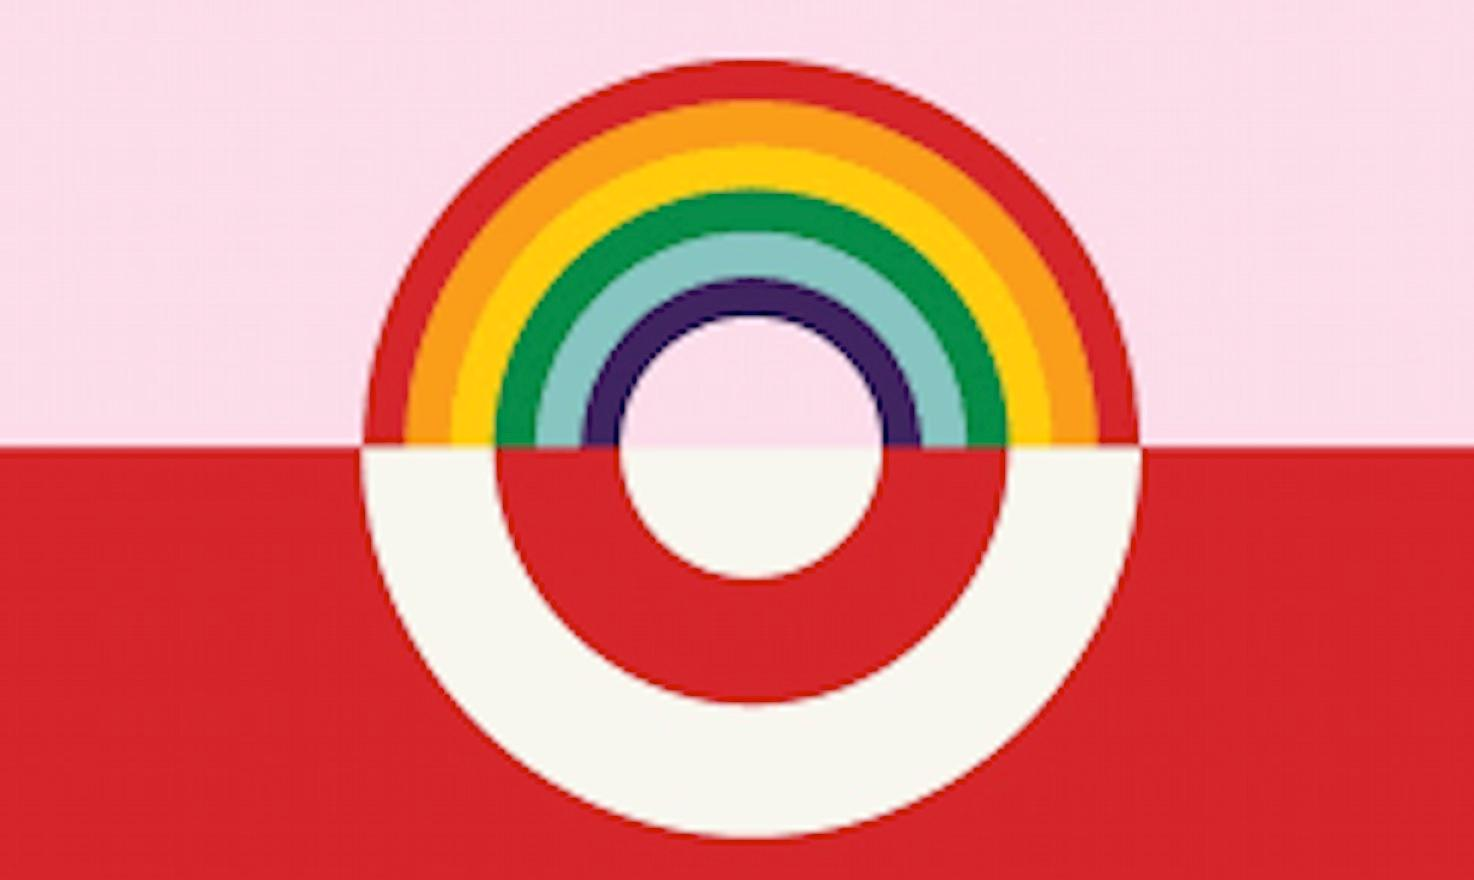 Boycotting trans-friendly businesses? You'll have to avoid more than just Target